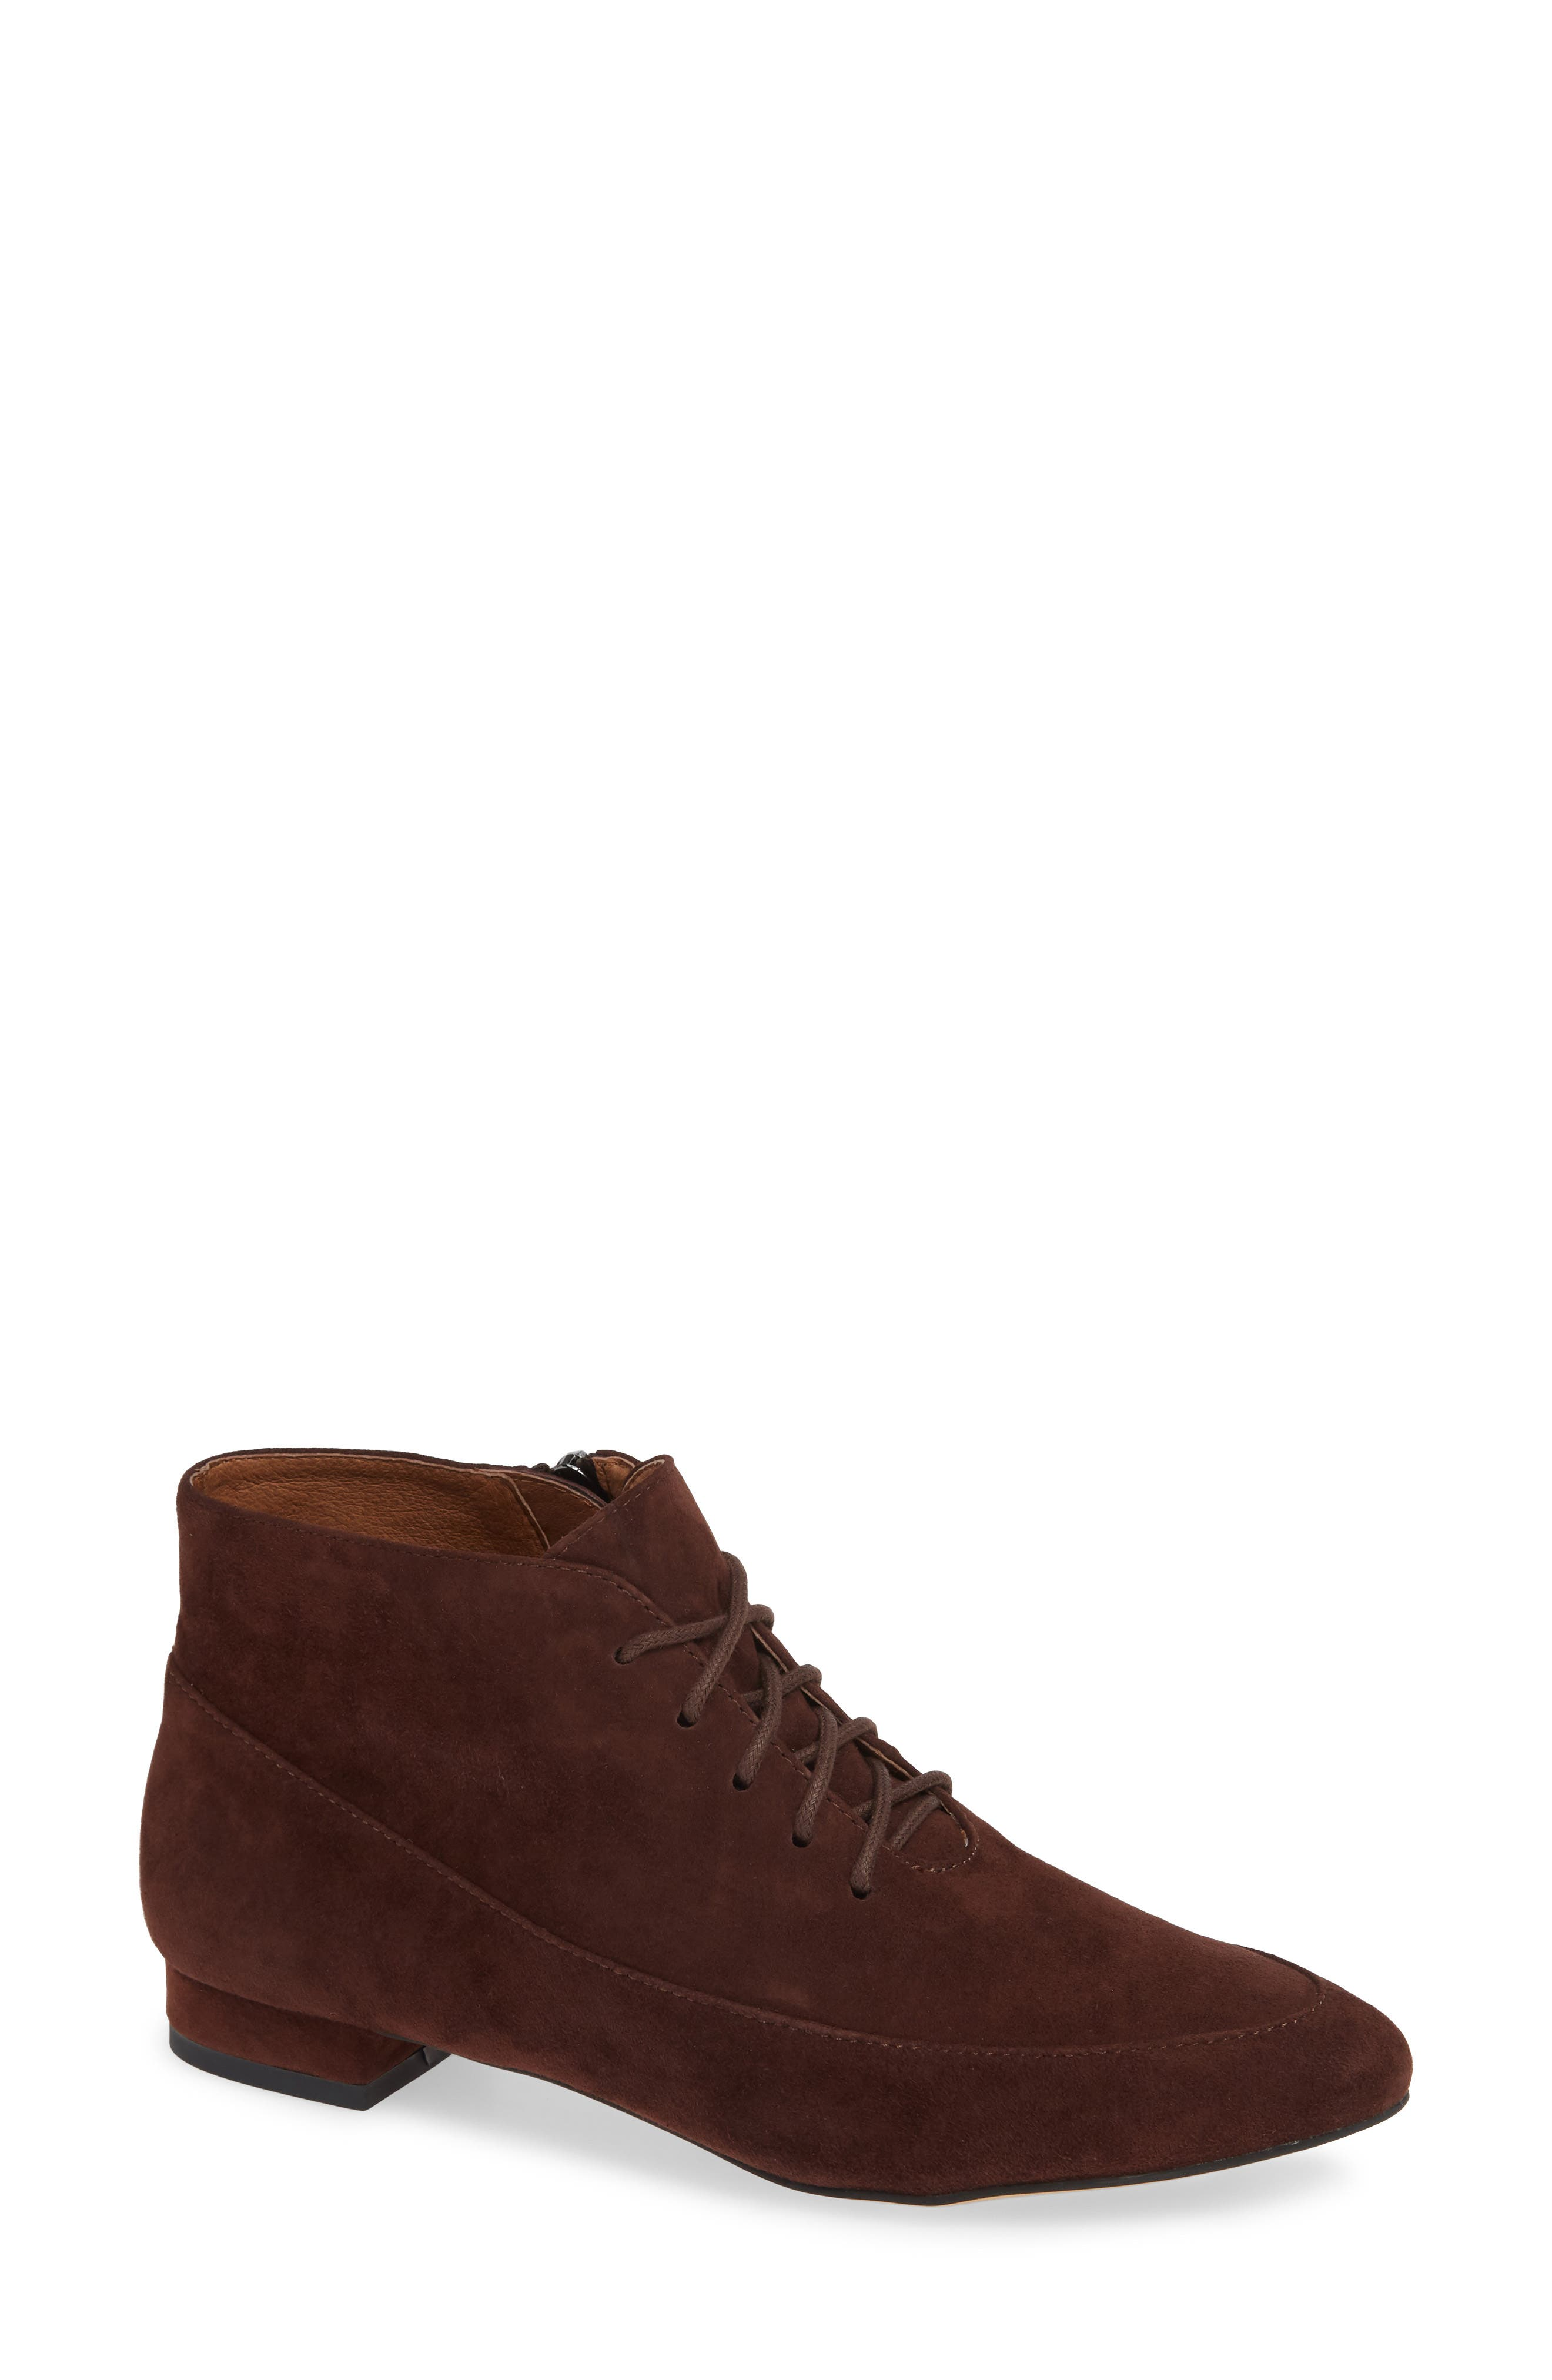 Amore Bootie,                         Main,                         color, CHOCOLATE SUEDE